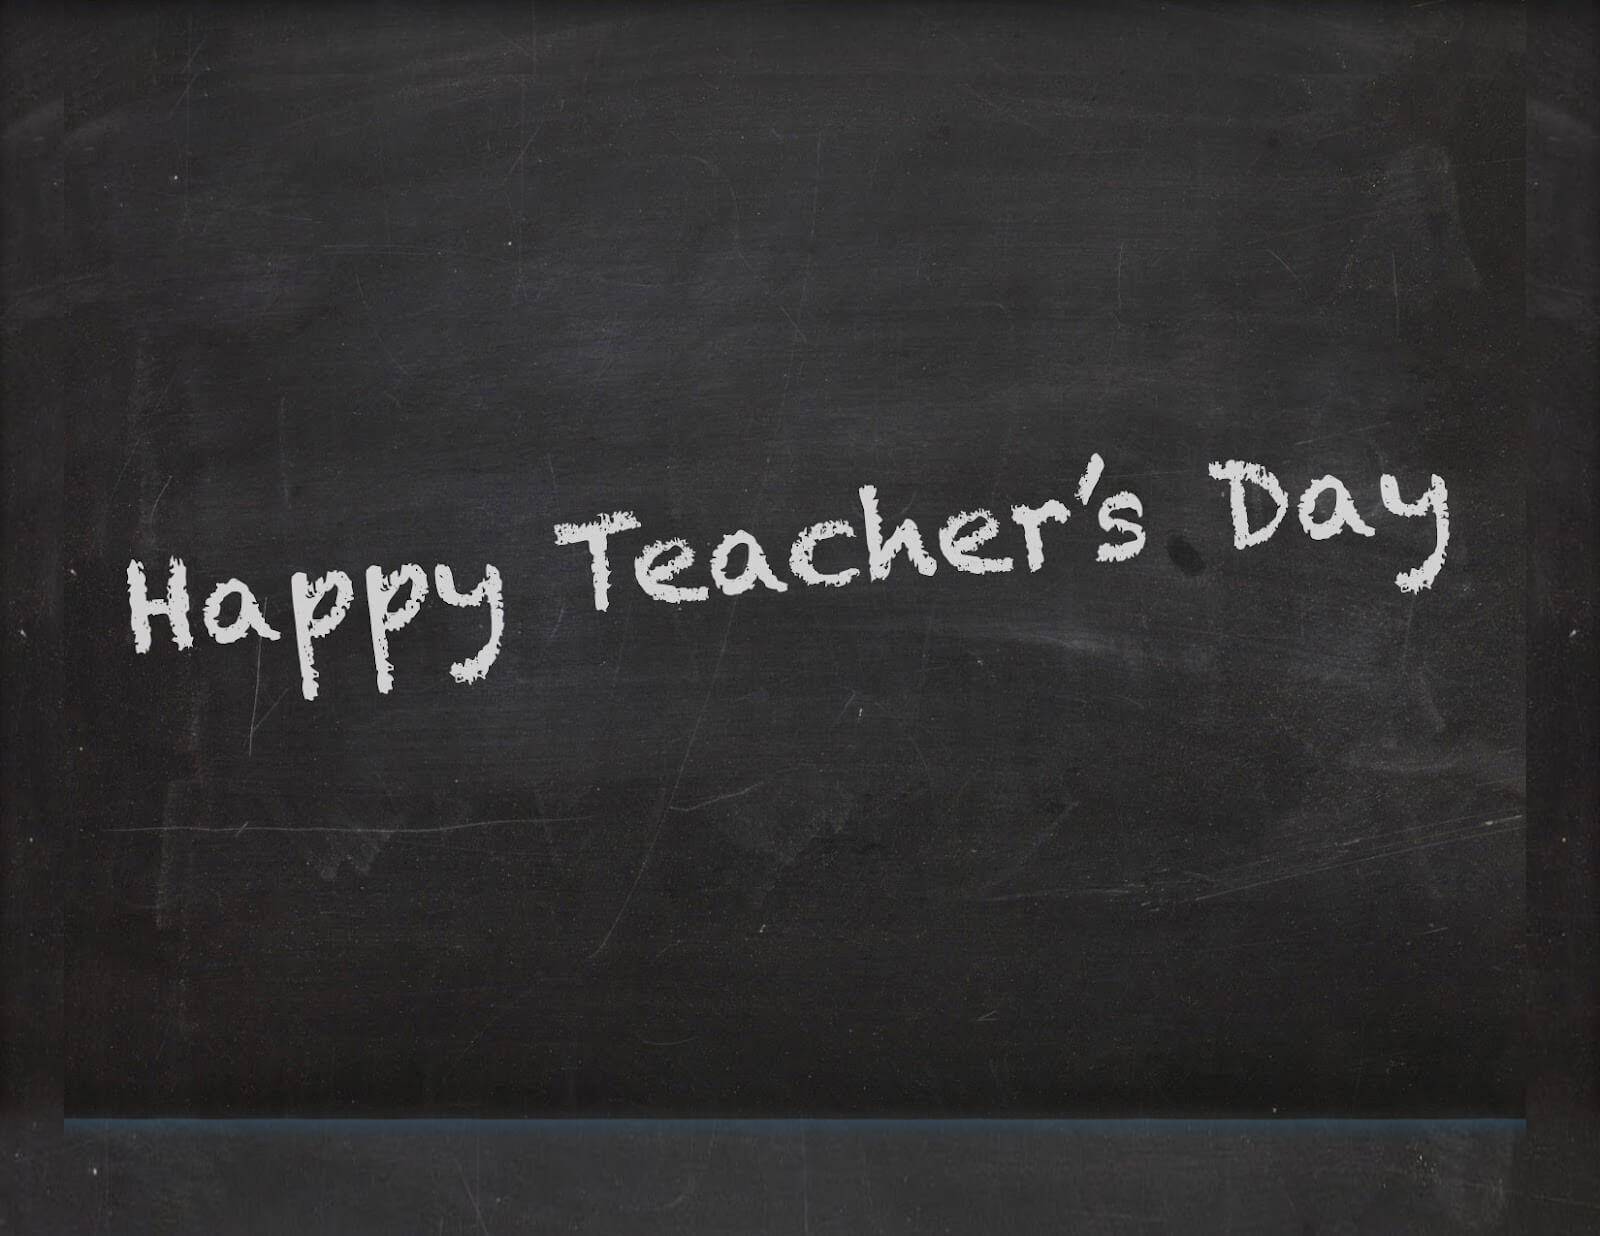 happy teachers day wishes on a blackboard